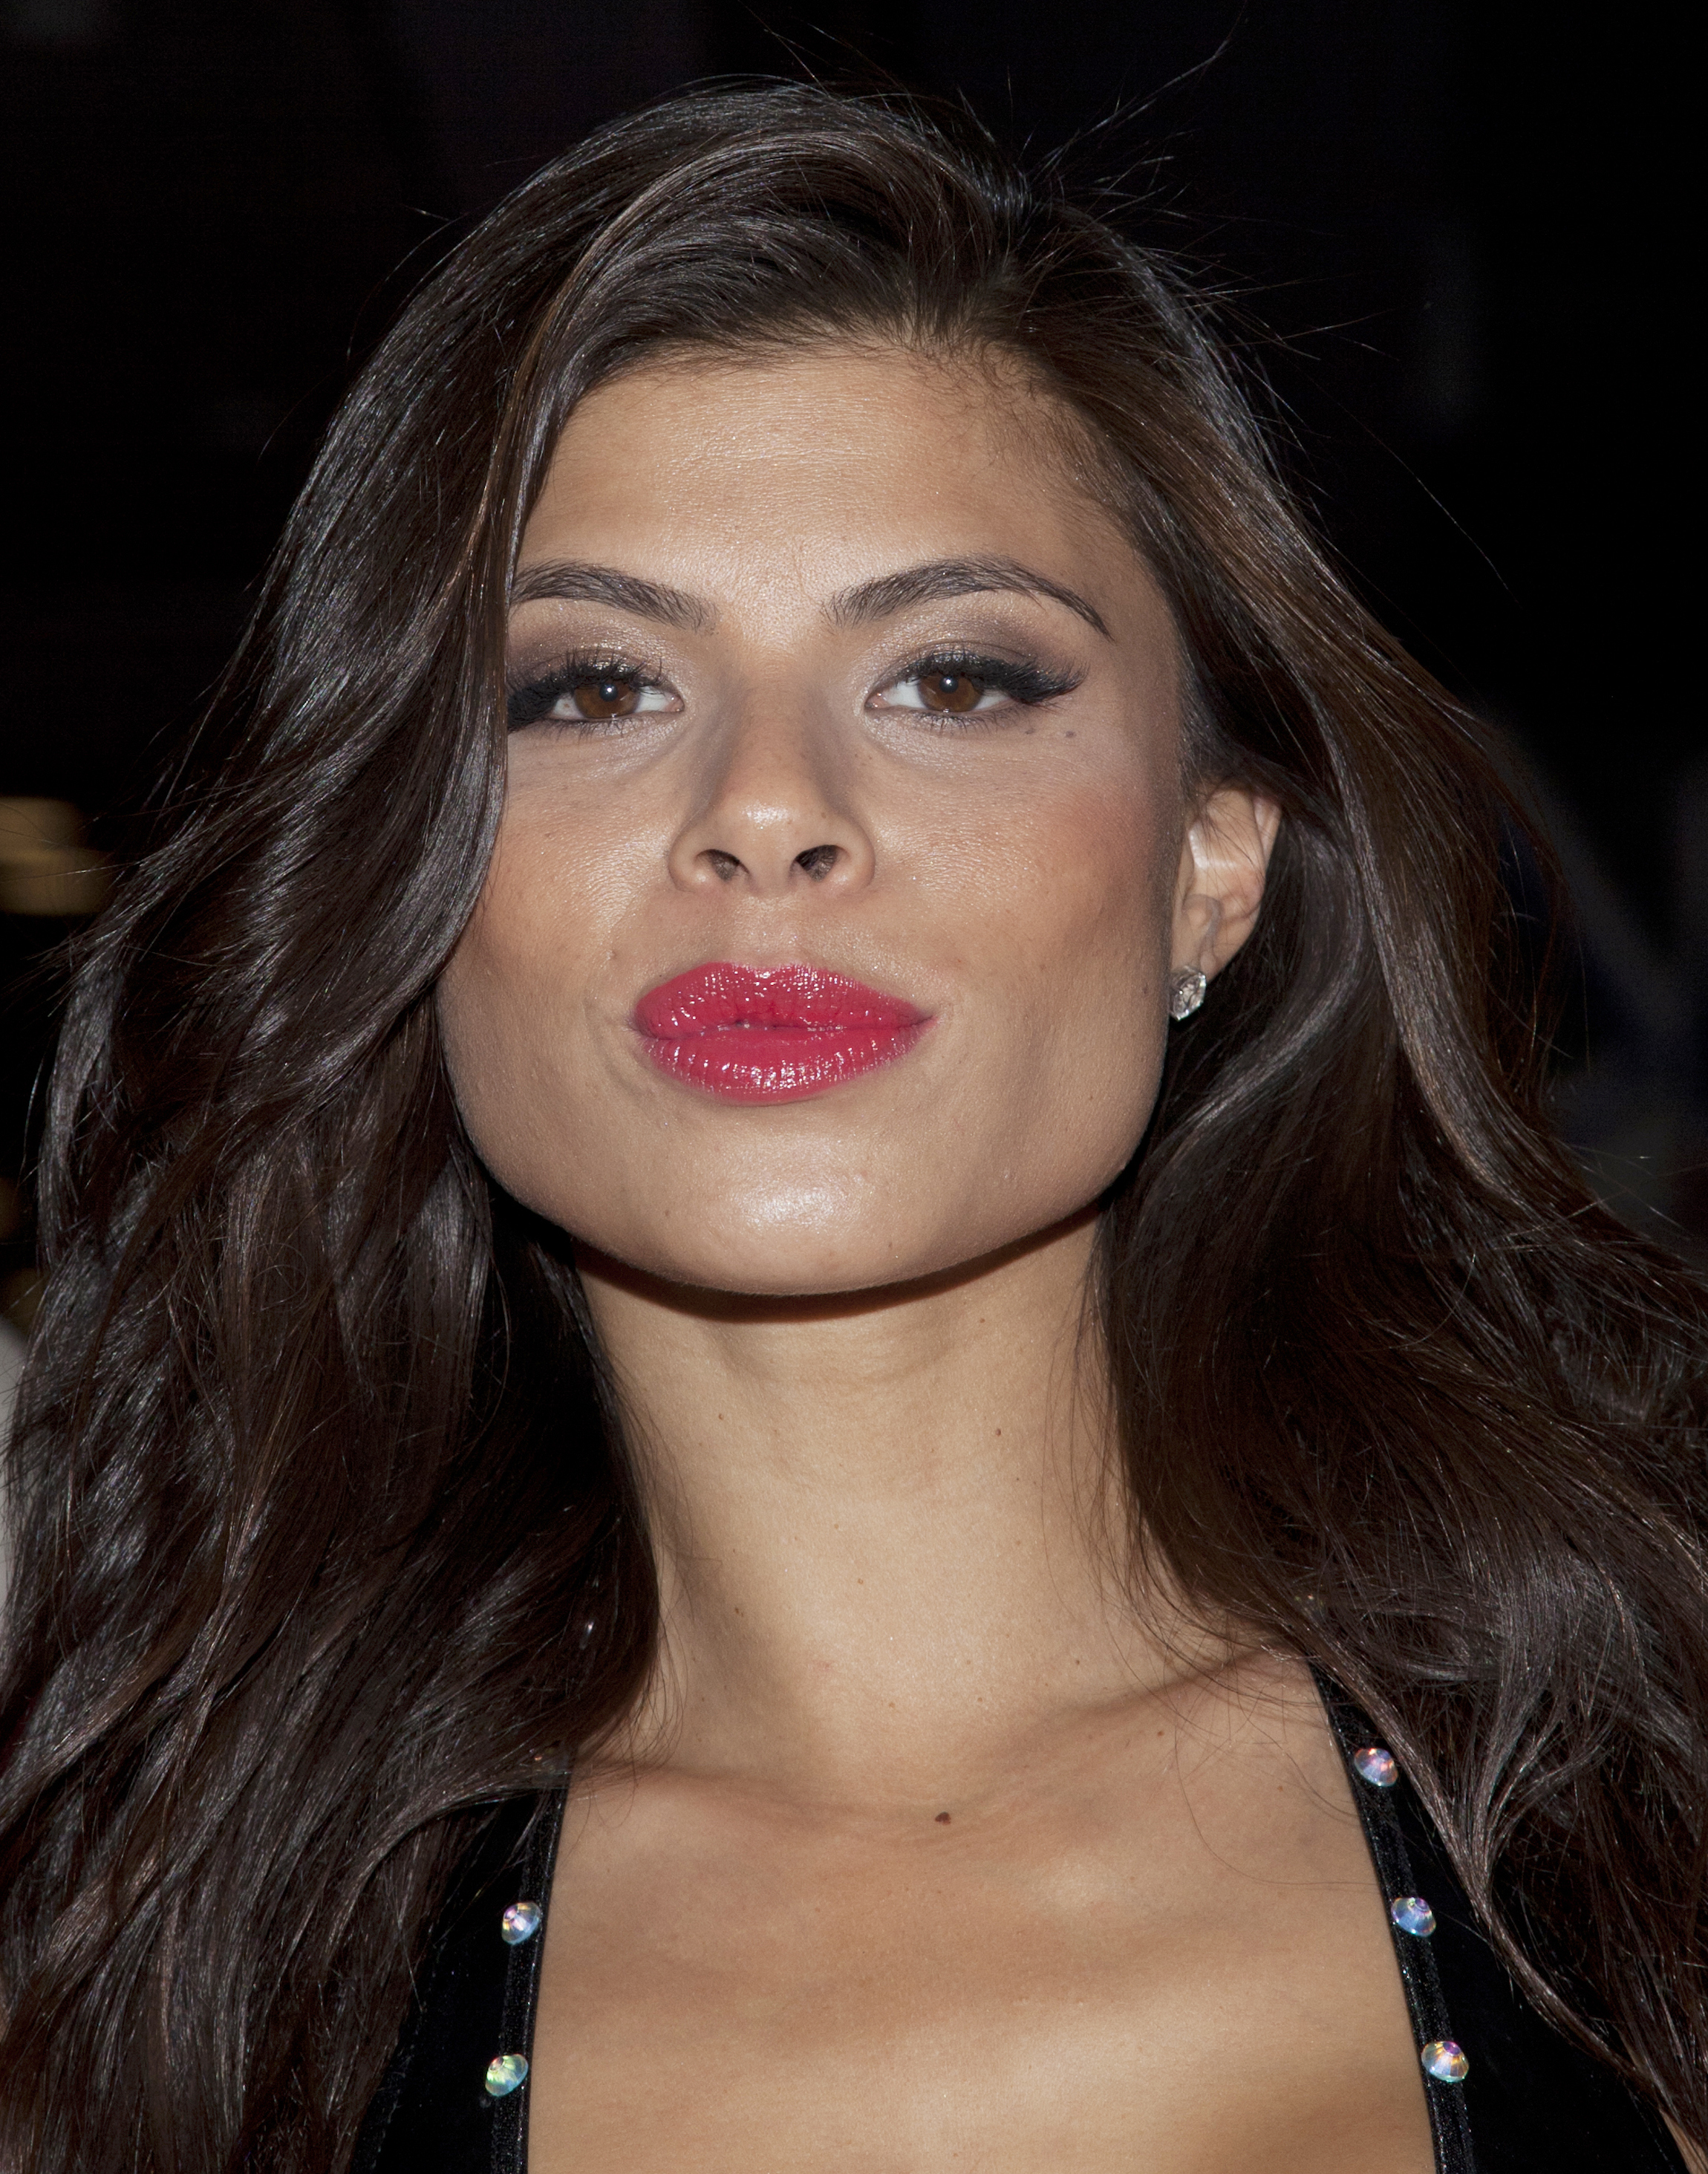 Celebrity Big Brother 2017: Who is Marissa Jade? All you need to know about the Mob Wives star